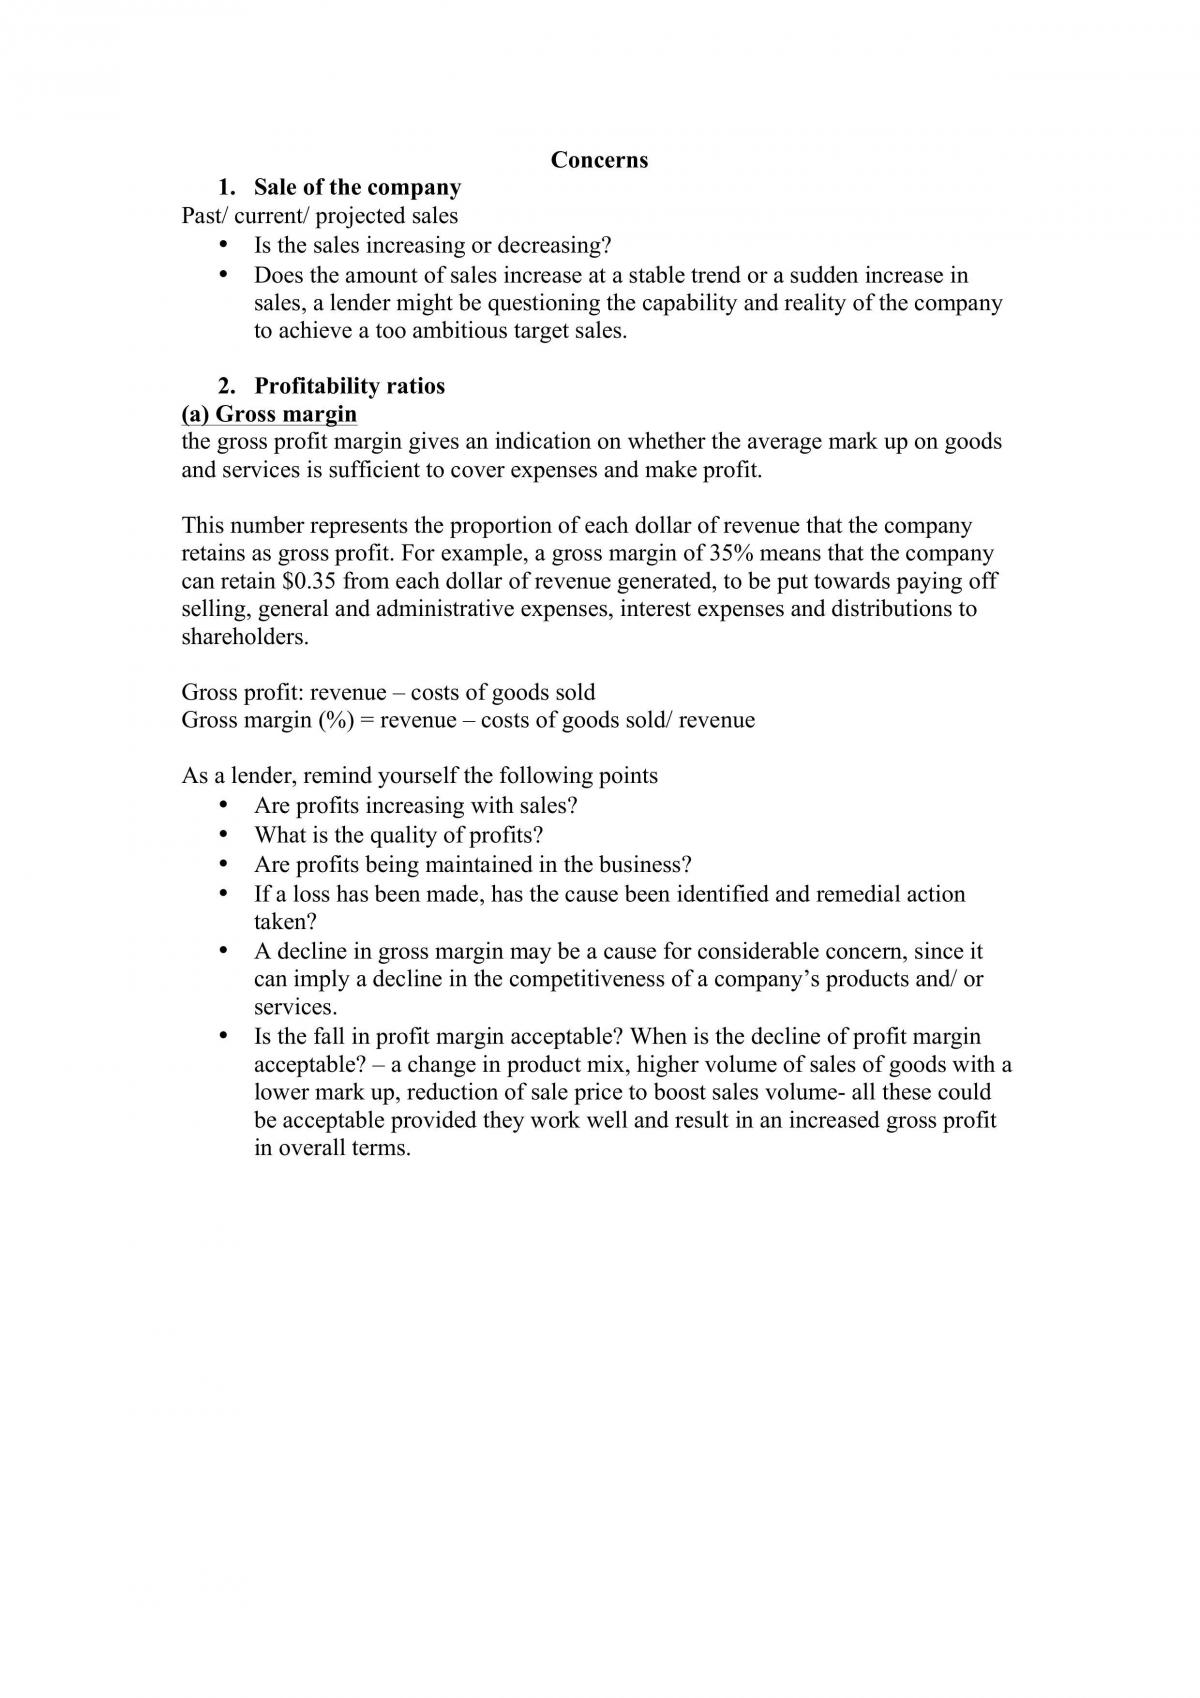 Case study concerns structure and explanations  - Page 1